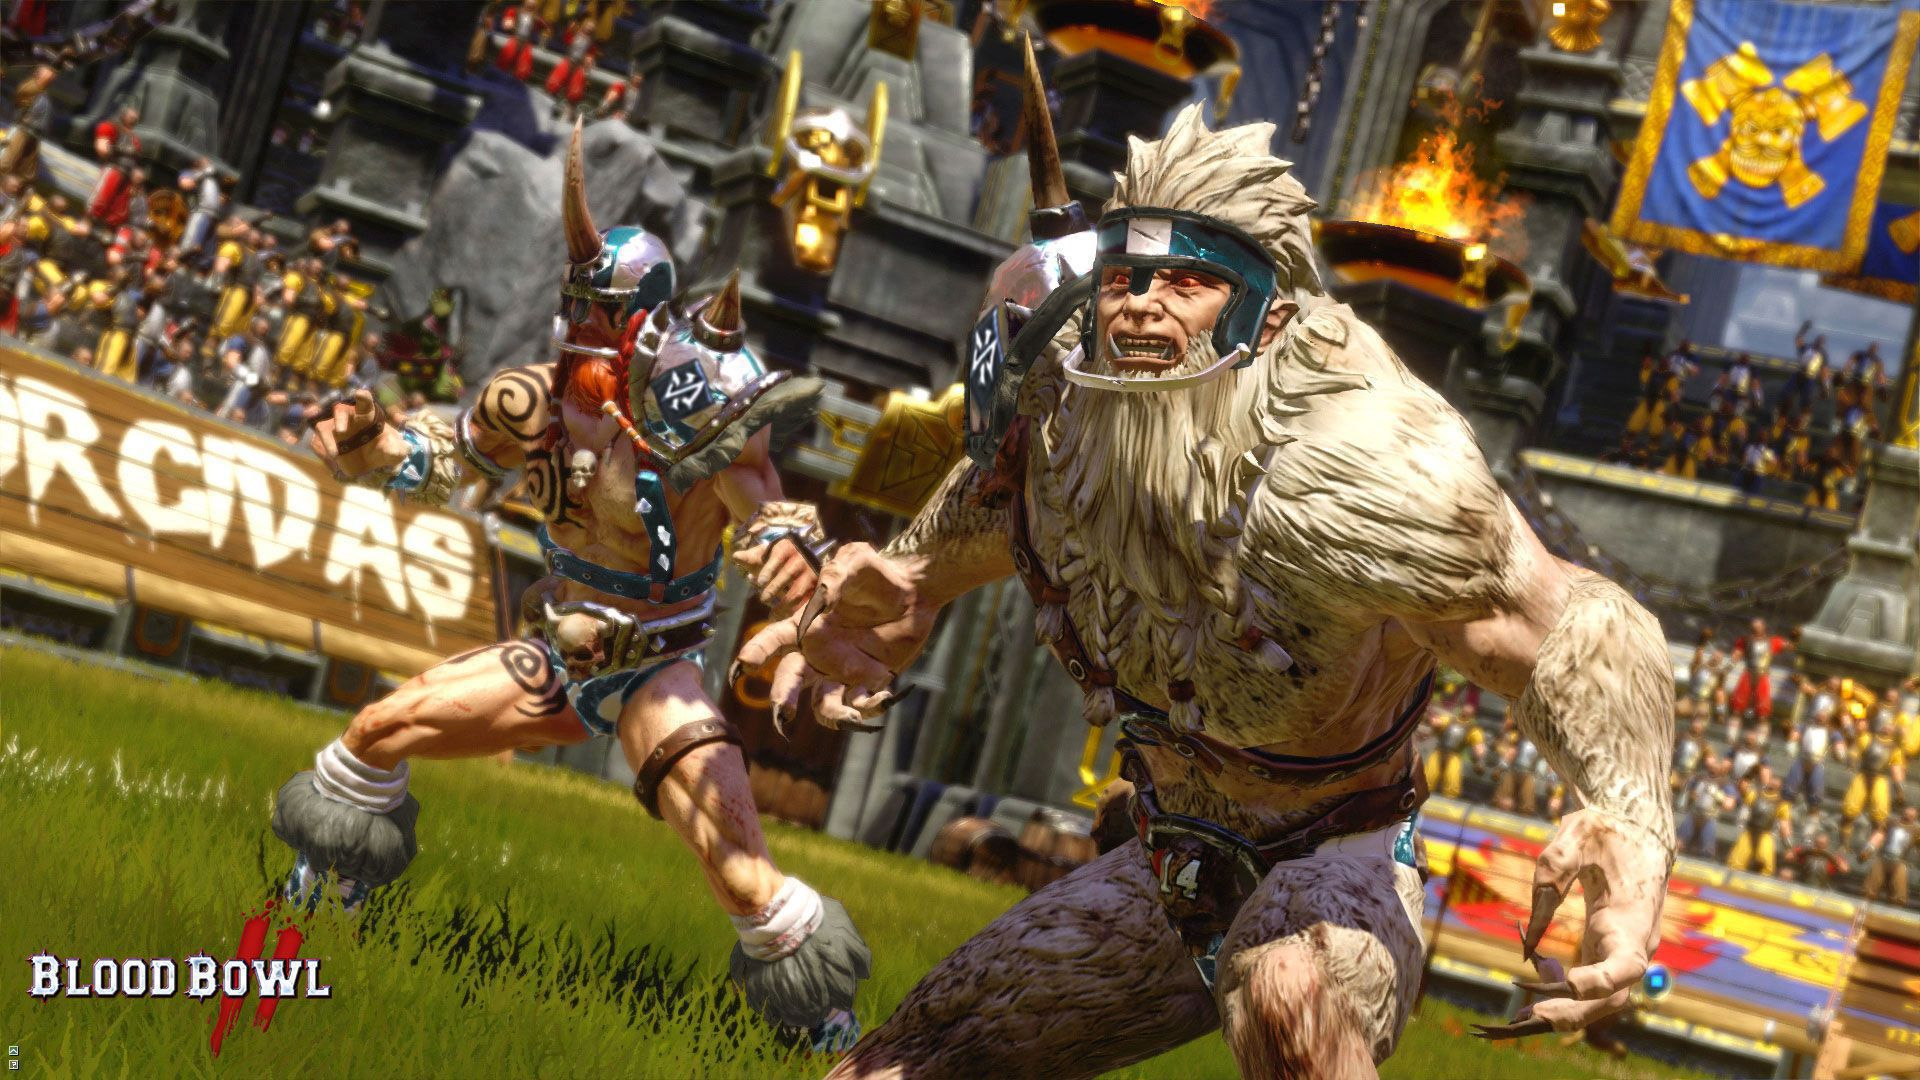 Blood Bowl Wallpapers HD